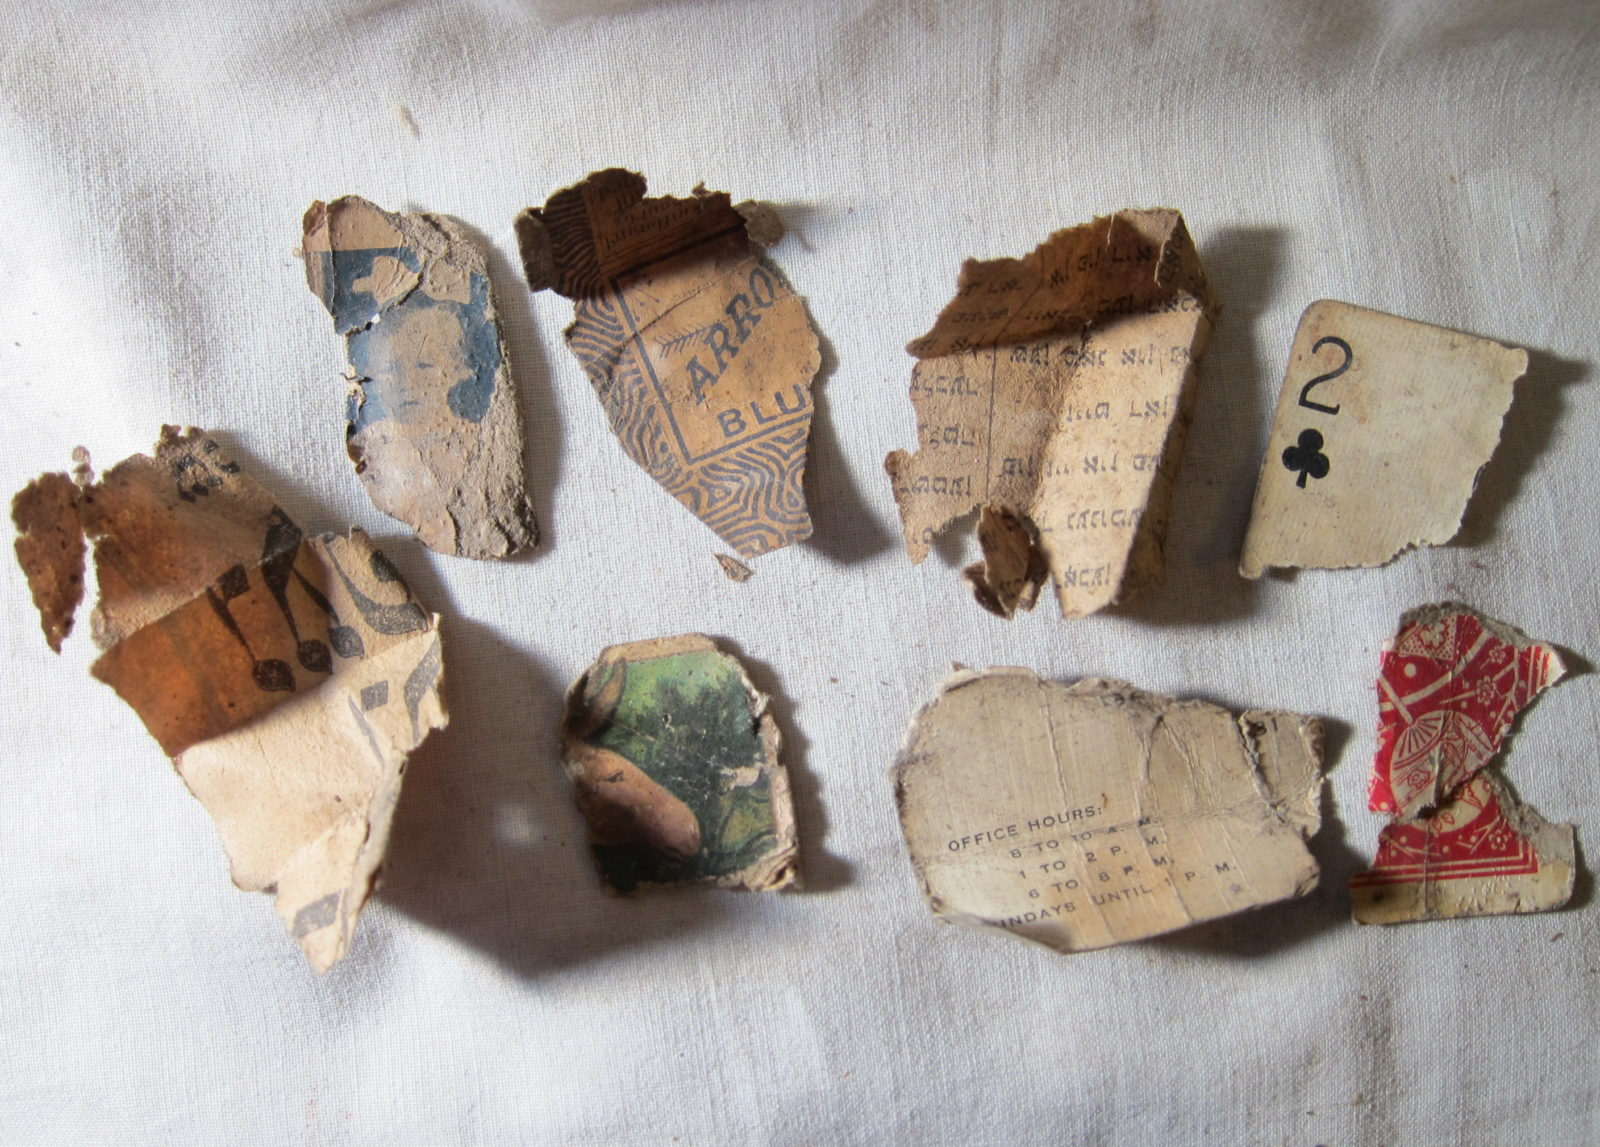 Assorted pieces of torn paper and artifacts found at 97 Orchard Street